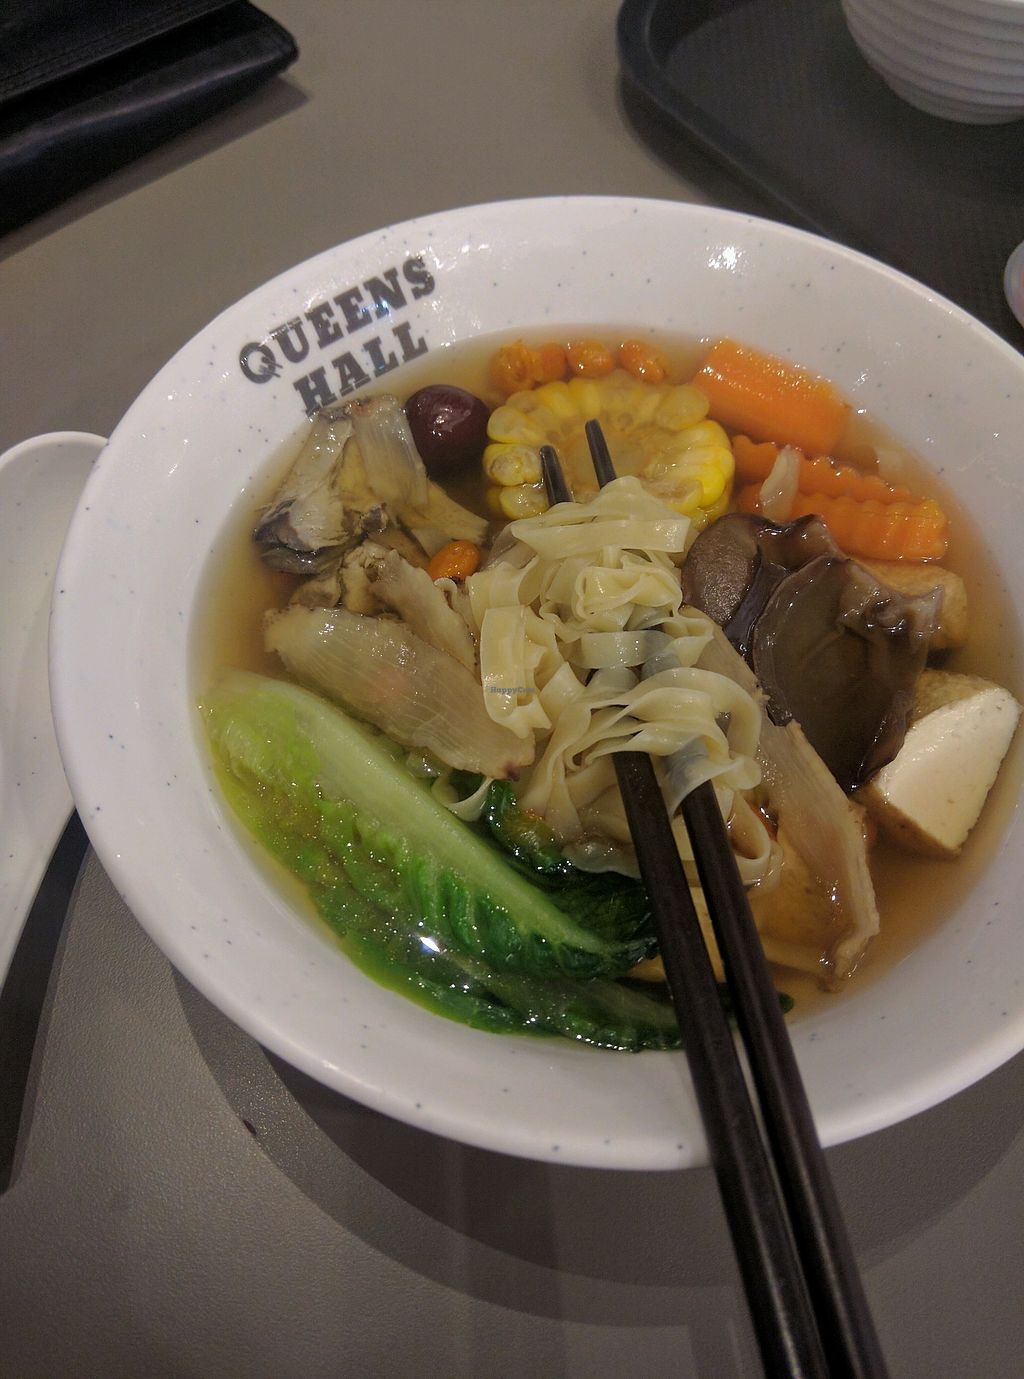 "Photo of Green Rabbit Vegetarian Kitchen  by <a href=""/members/profile/Summer_Tan"">Summer_Tan</a> <br/>Special of the day: Herbal Soup  Noodles Hearty and comforting. Noodles has a bite, al dente, it's good. Herbs, vegetables, carrot and tofu. Would be nice with some mushrooms. Pretty good vegan herbal soup <br/> February 3, 2018  - <a href='/contact/abuse/image/77842/354504'>Report</a>"